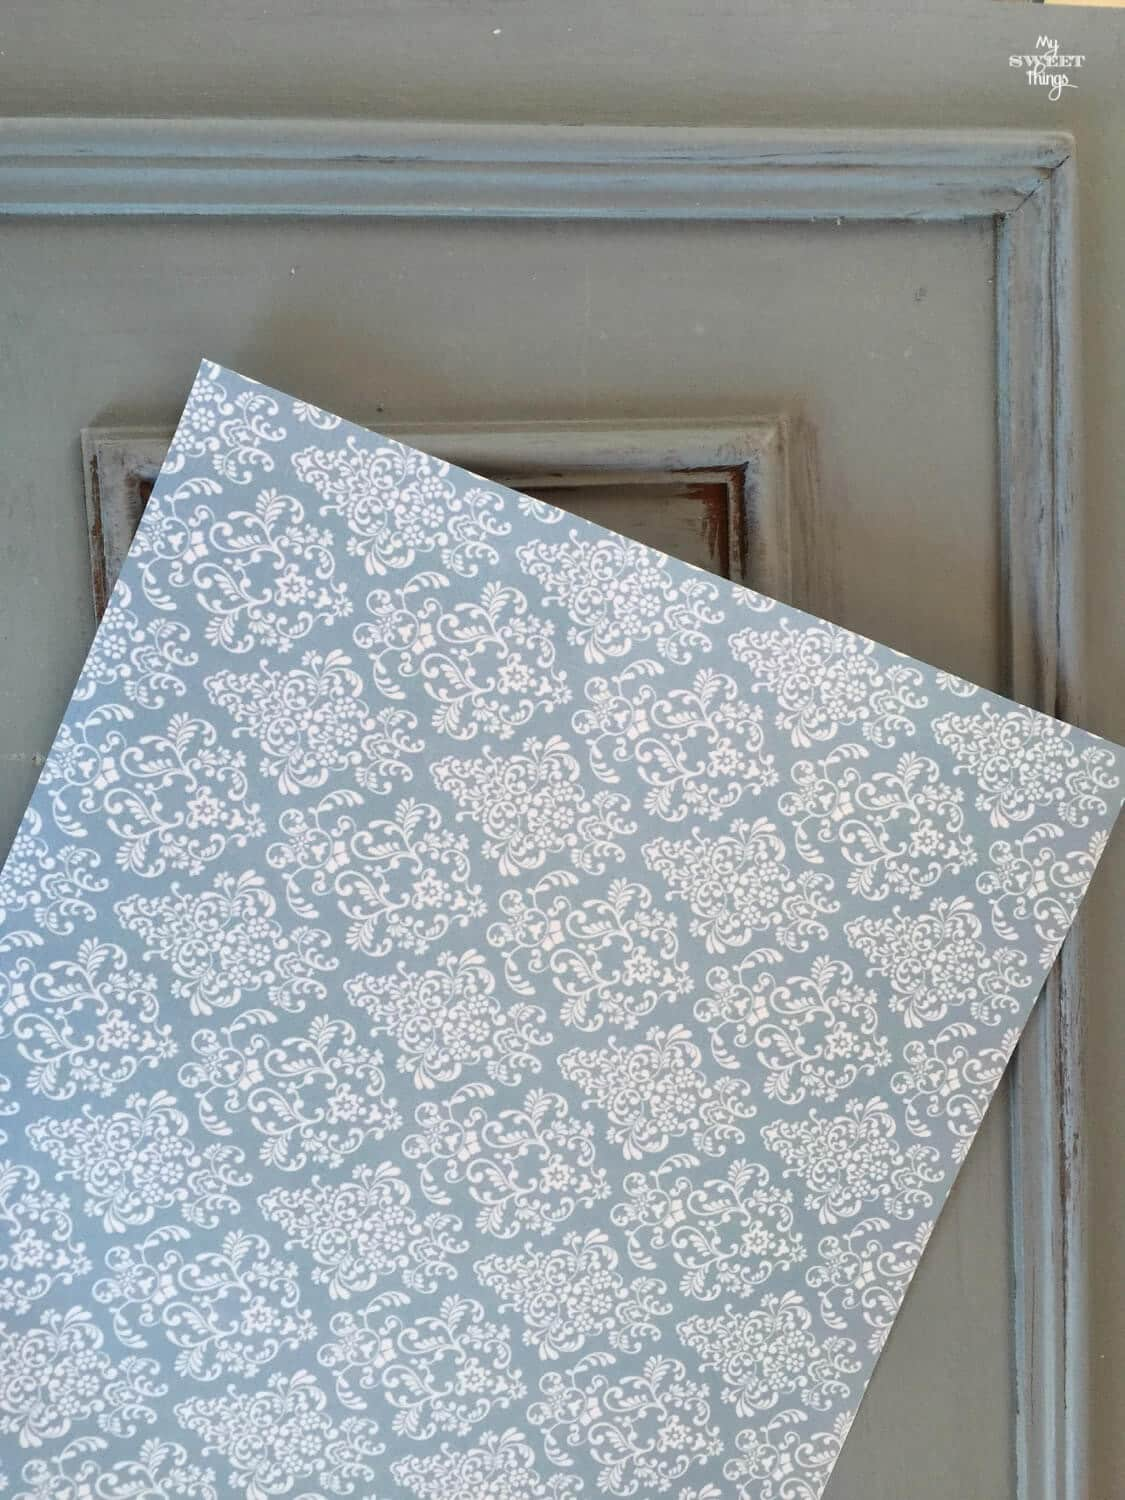 How to transform furniture easily with old fashioned milk paint and decoupage · My Sweet Things